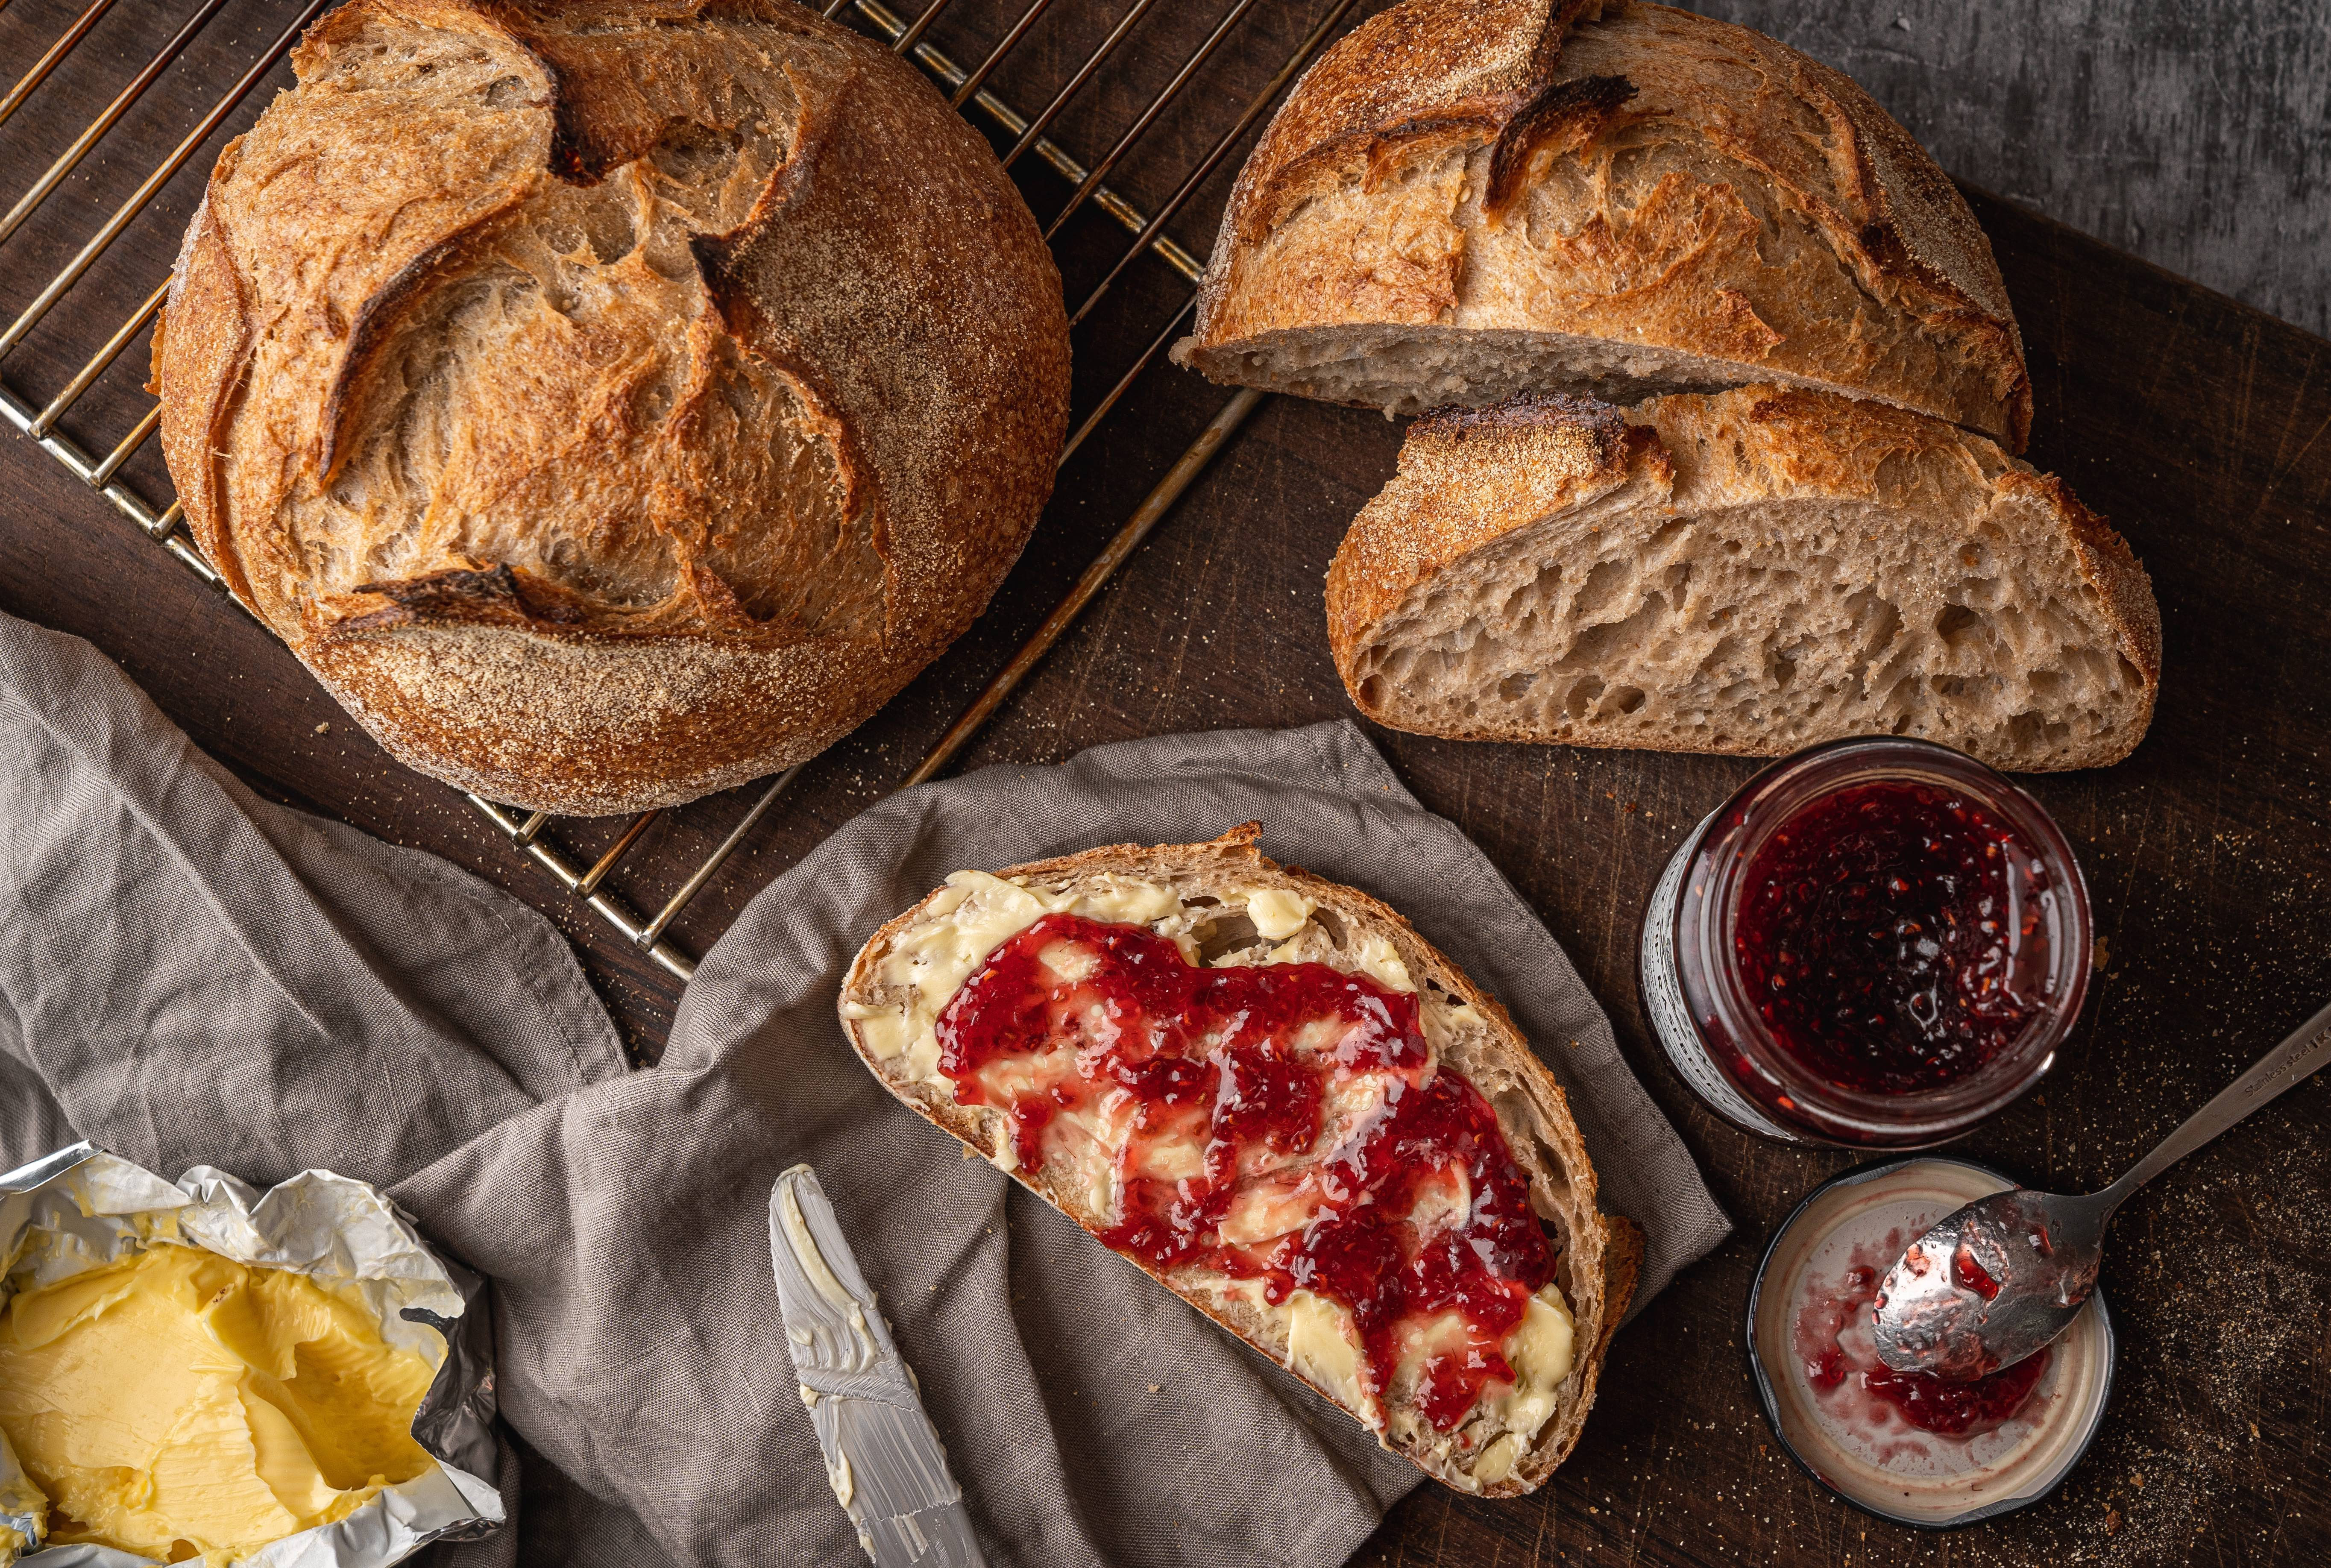 Bakehouse Bread and Jam